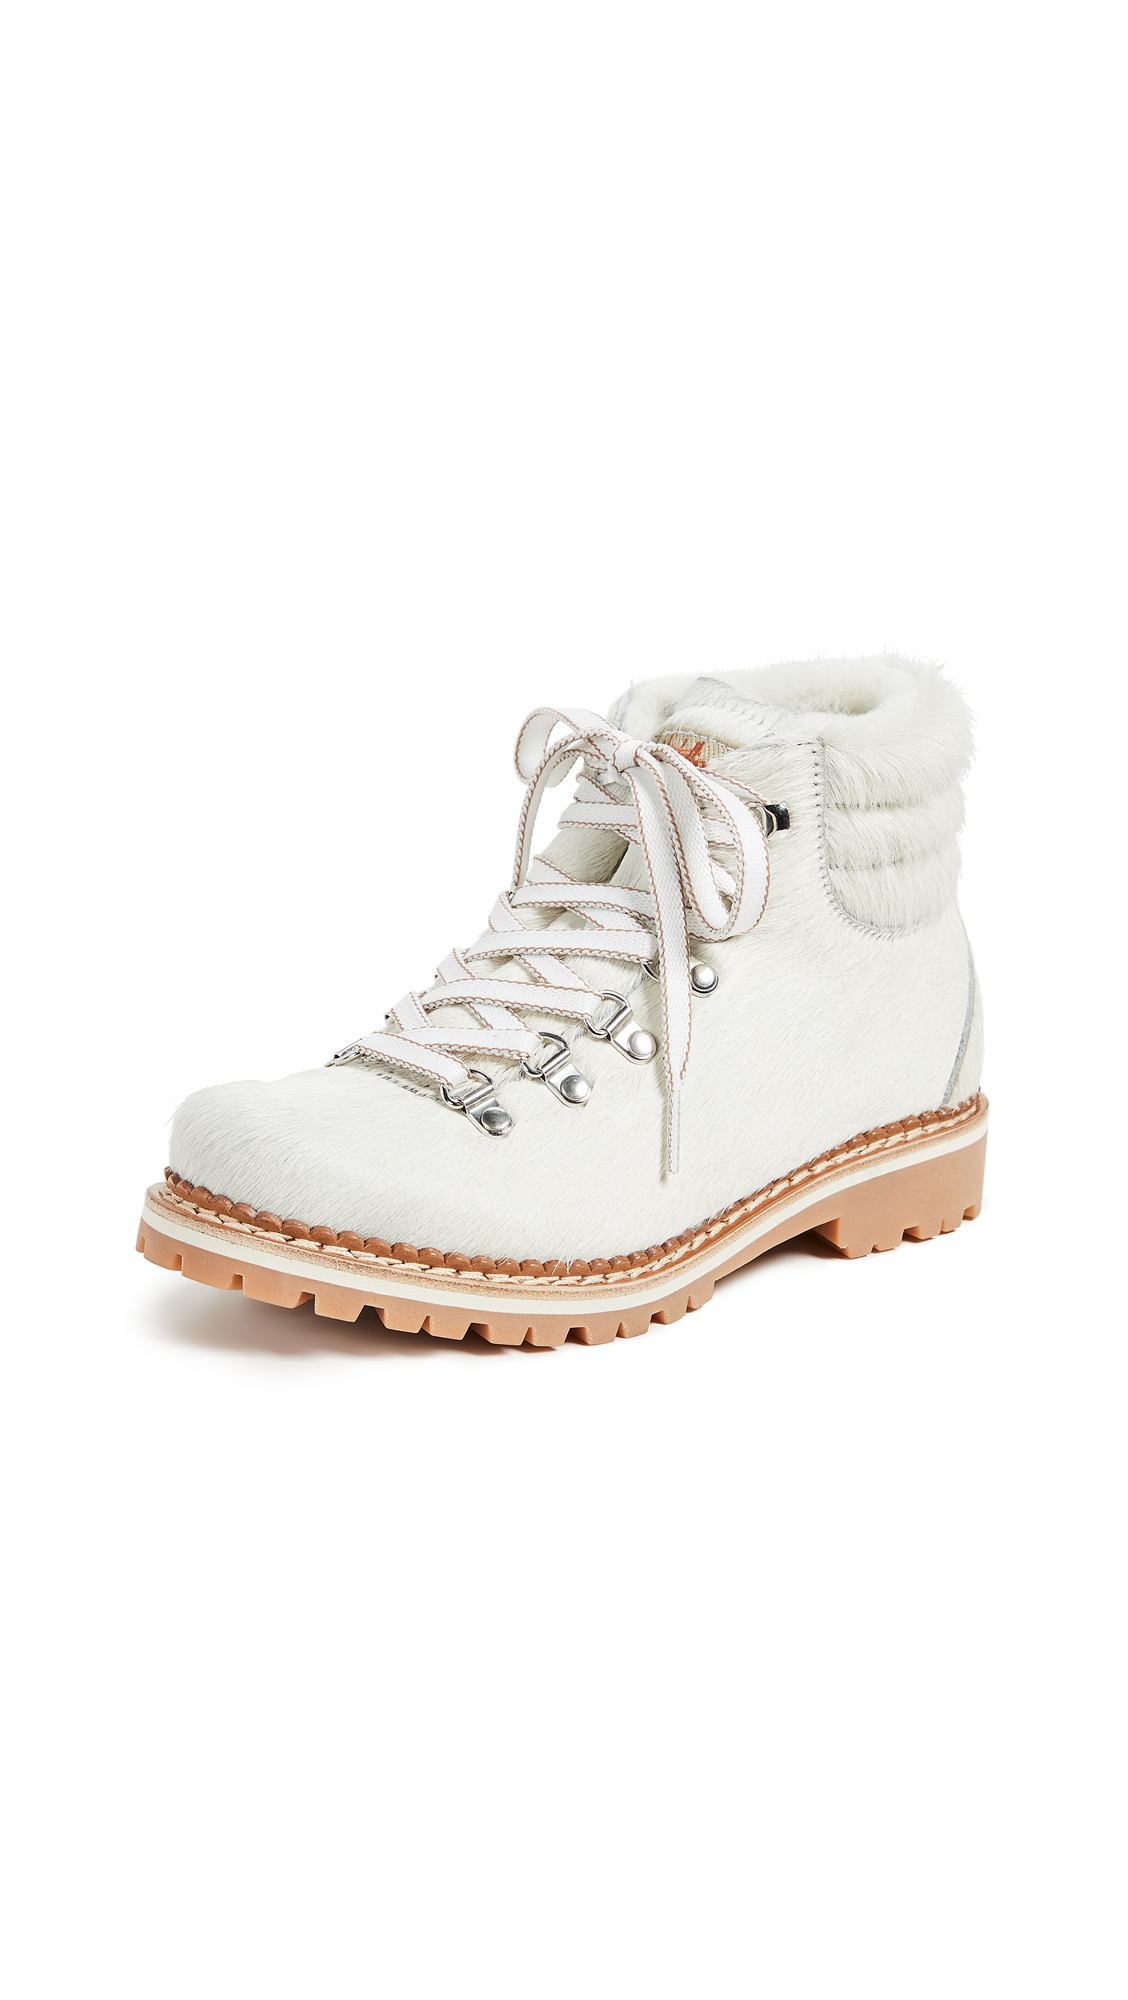 MONTELLIANA Margherita Hiker Boots in White